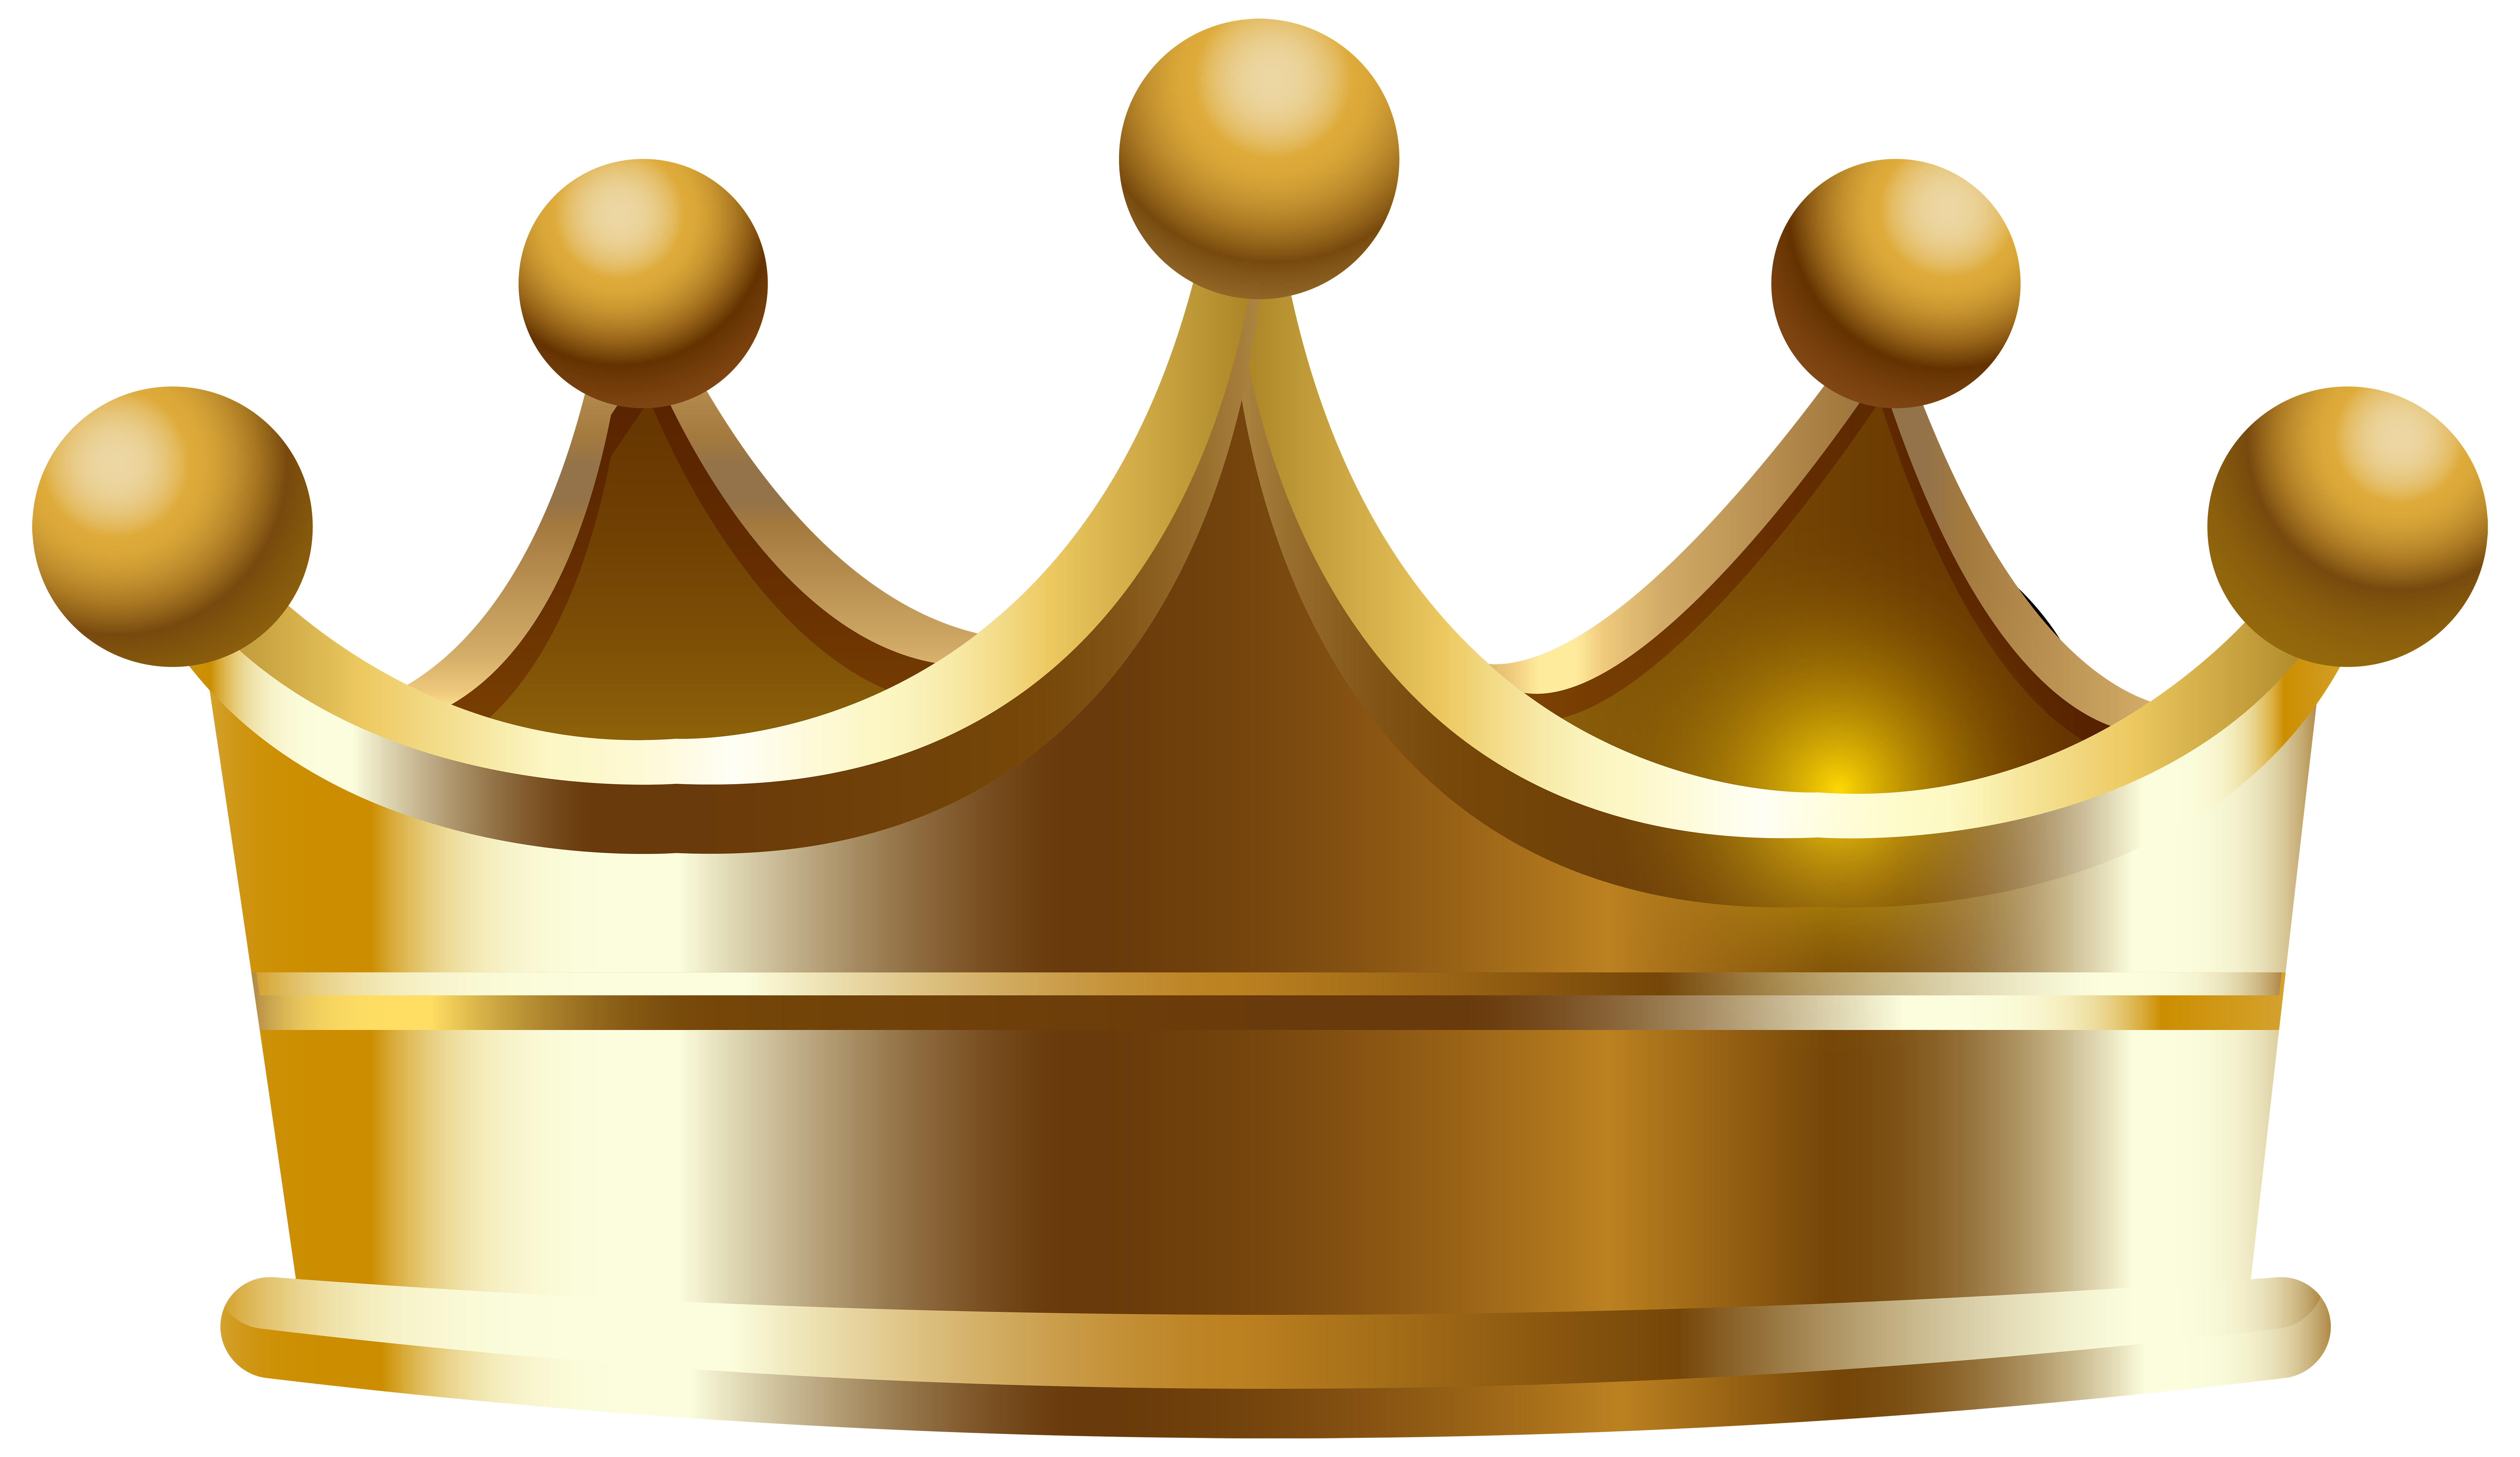 Pin By Mara P On Realeza Pinterest Clip Art Crown Png And Art